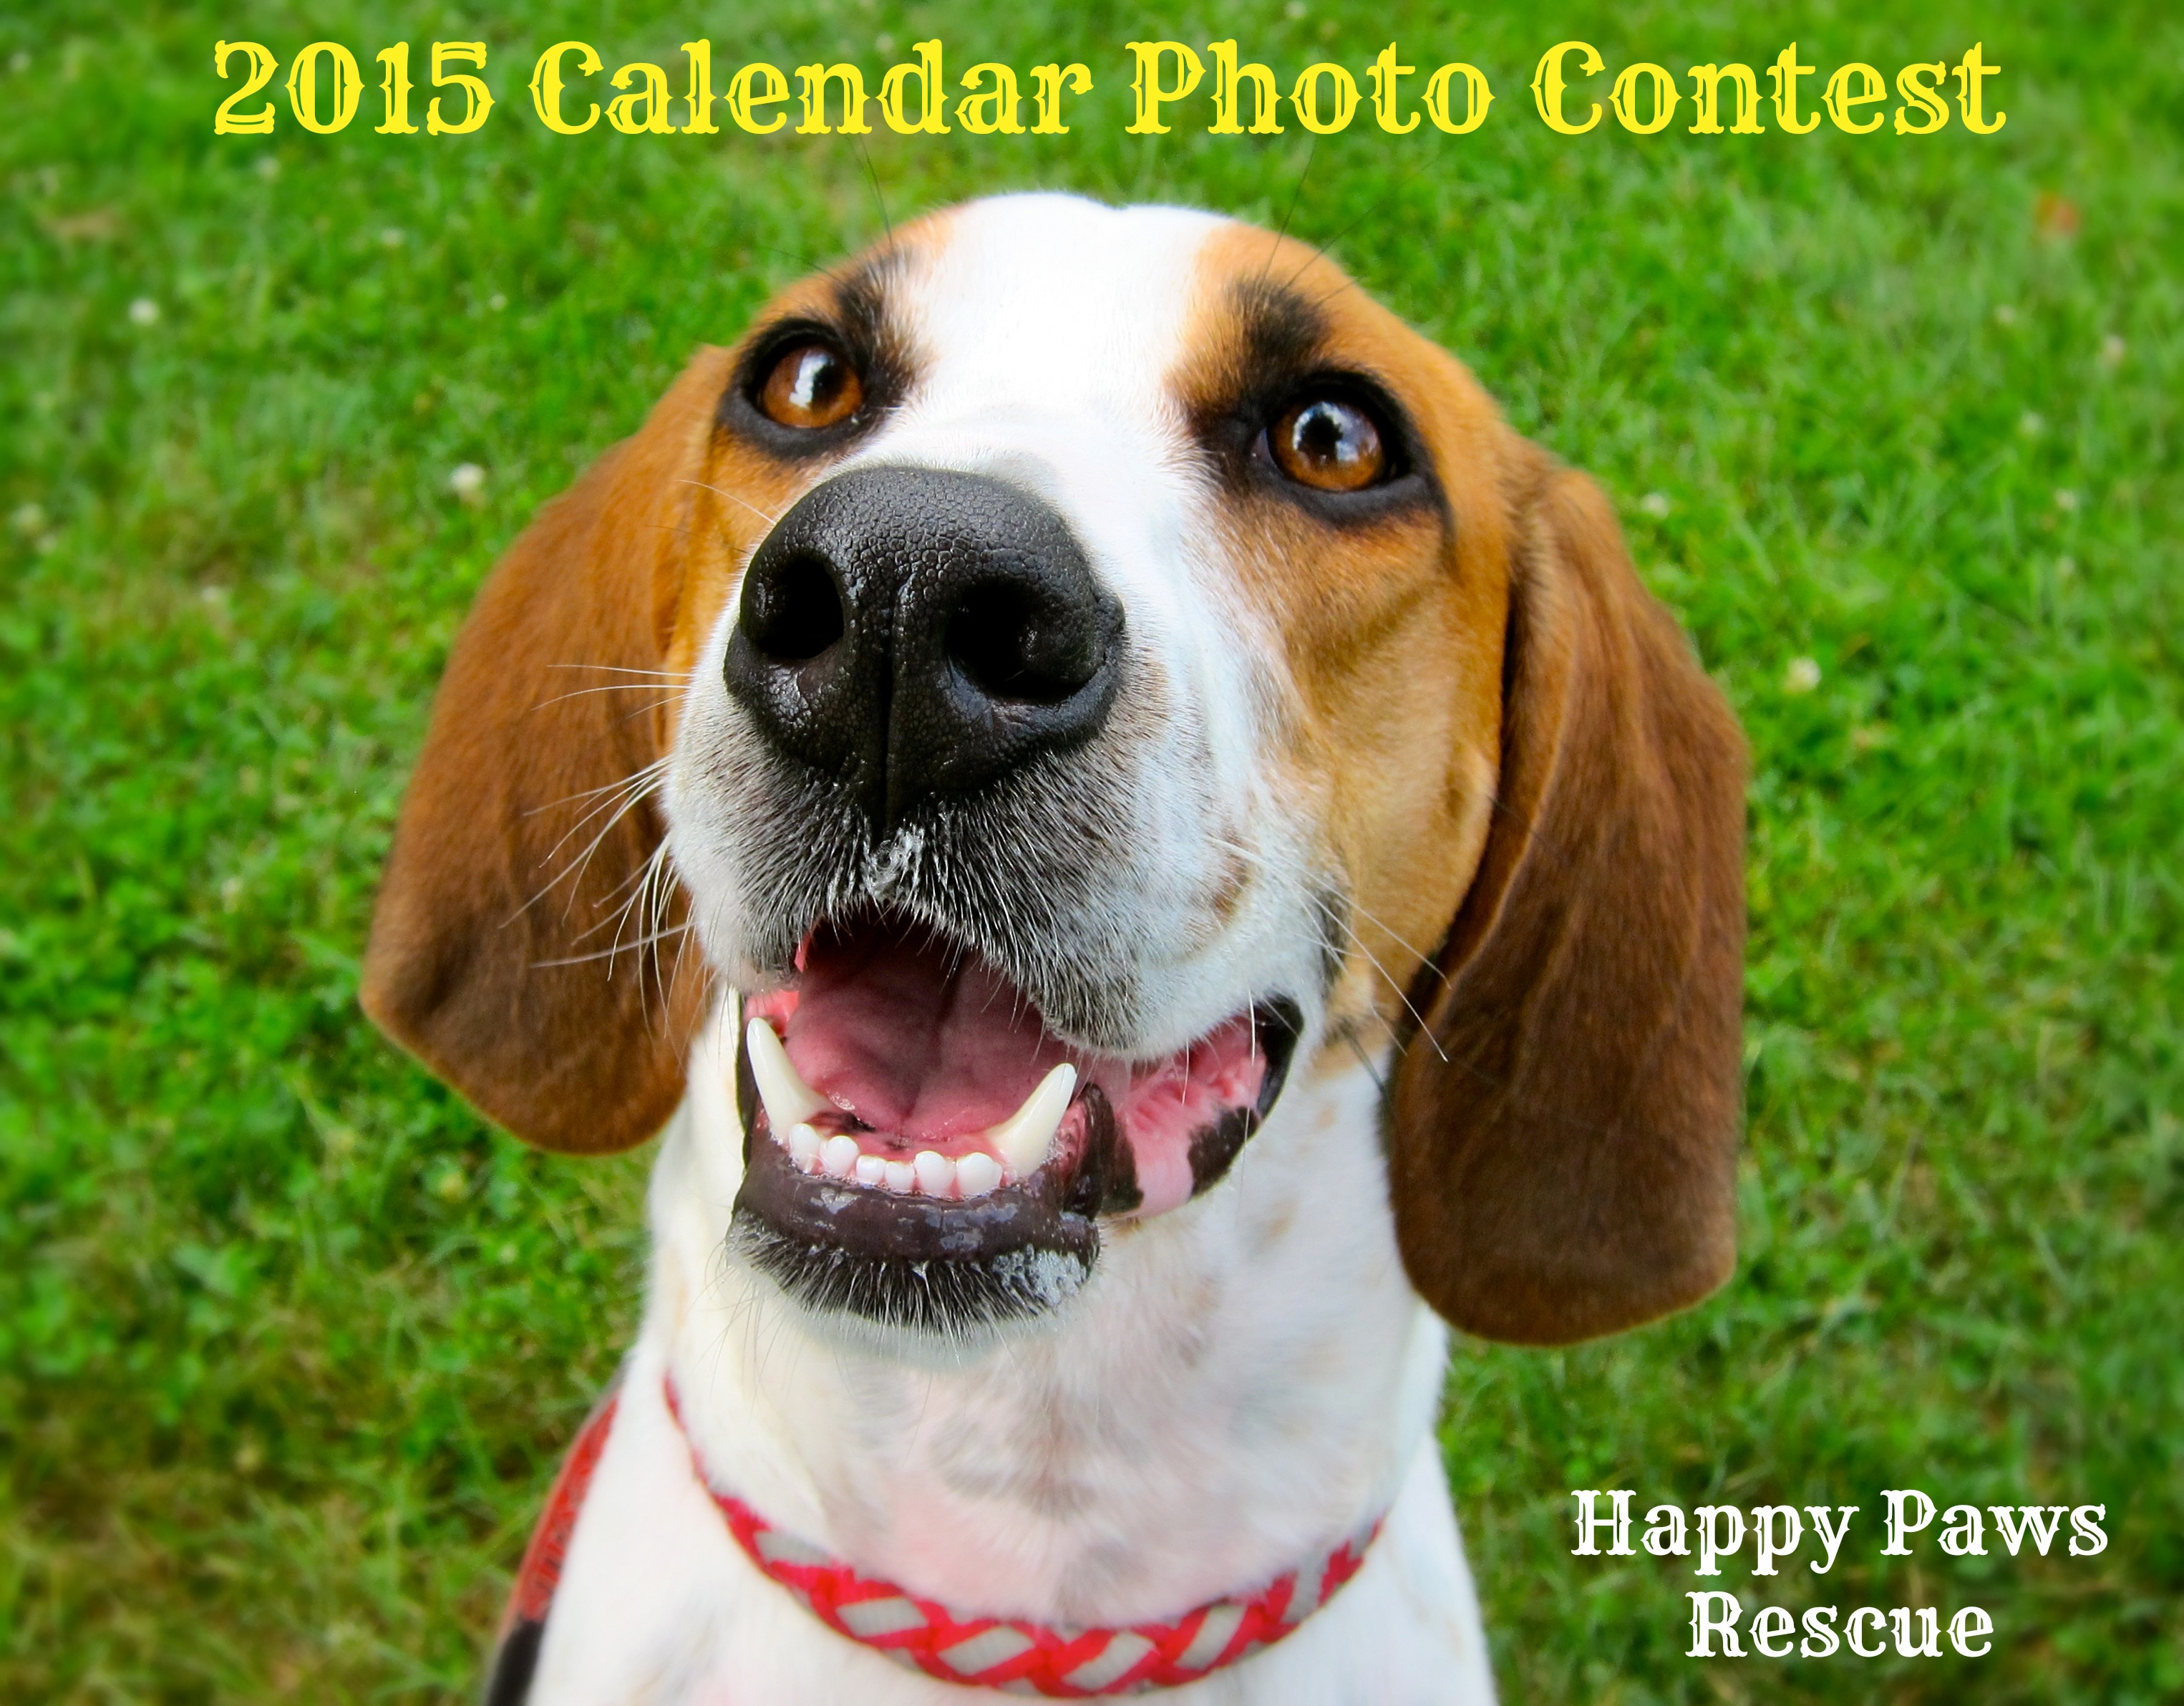 Calendar Photography Contest : Calendar photo contest